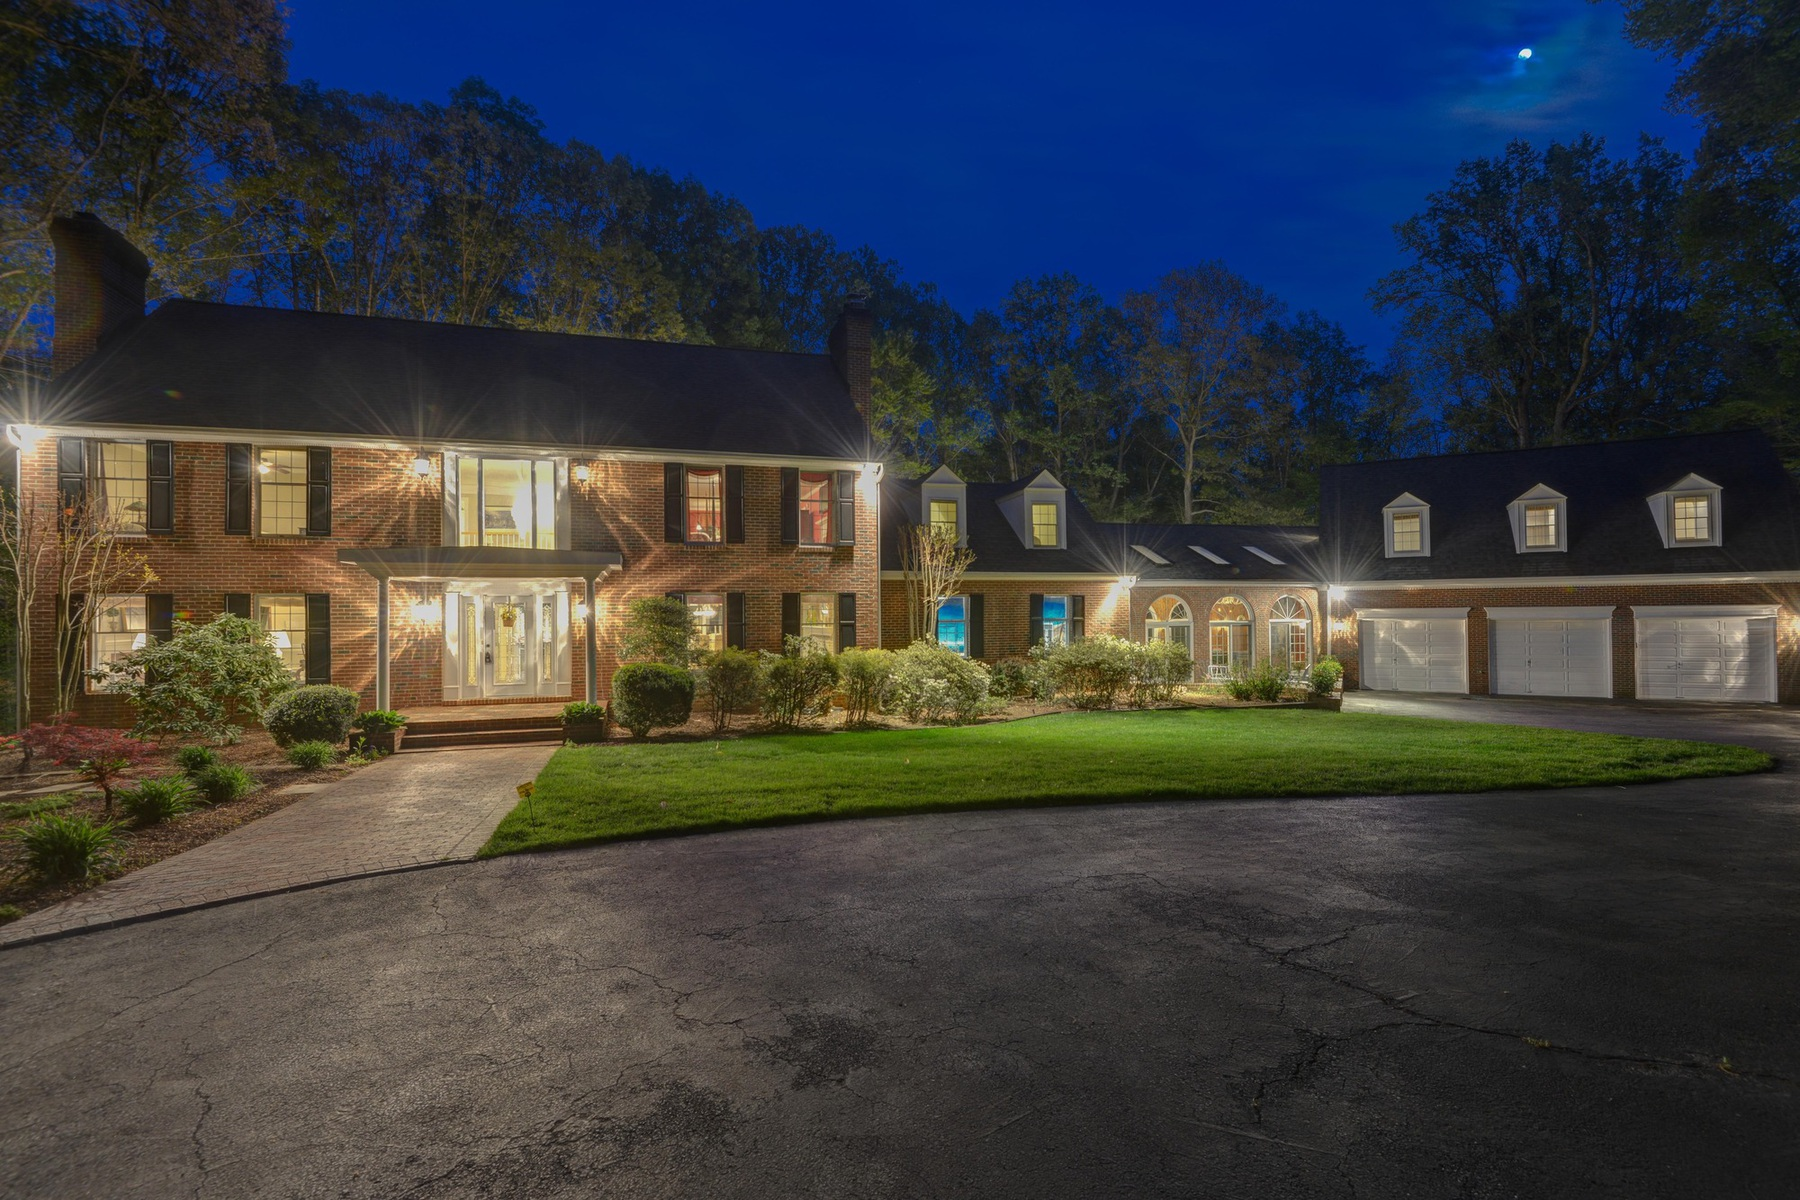 Single Family Home for Sale at Harbor Hills 735 Intrepid Way Davidsonville, Maryland 21035 United States